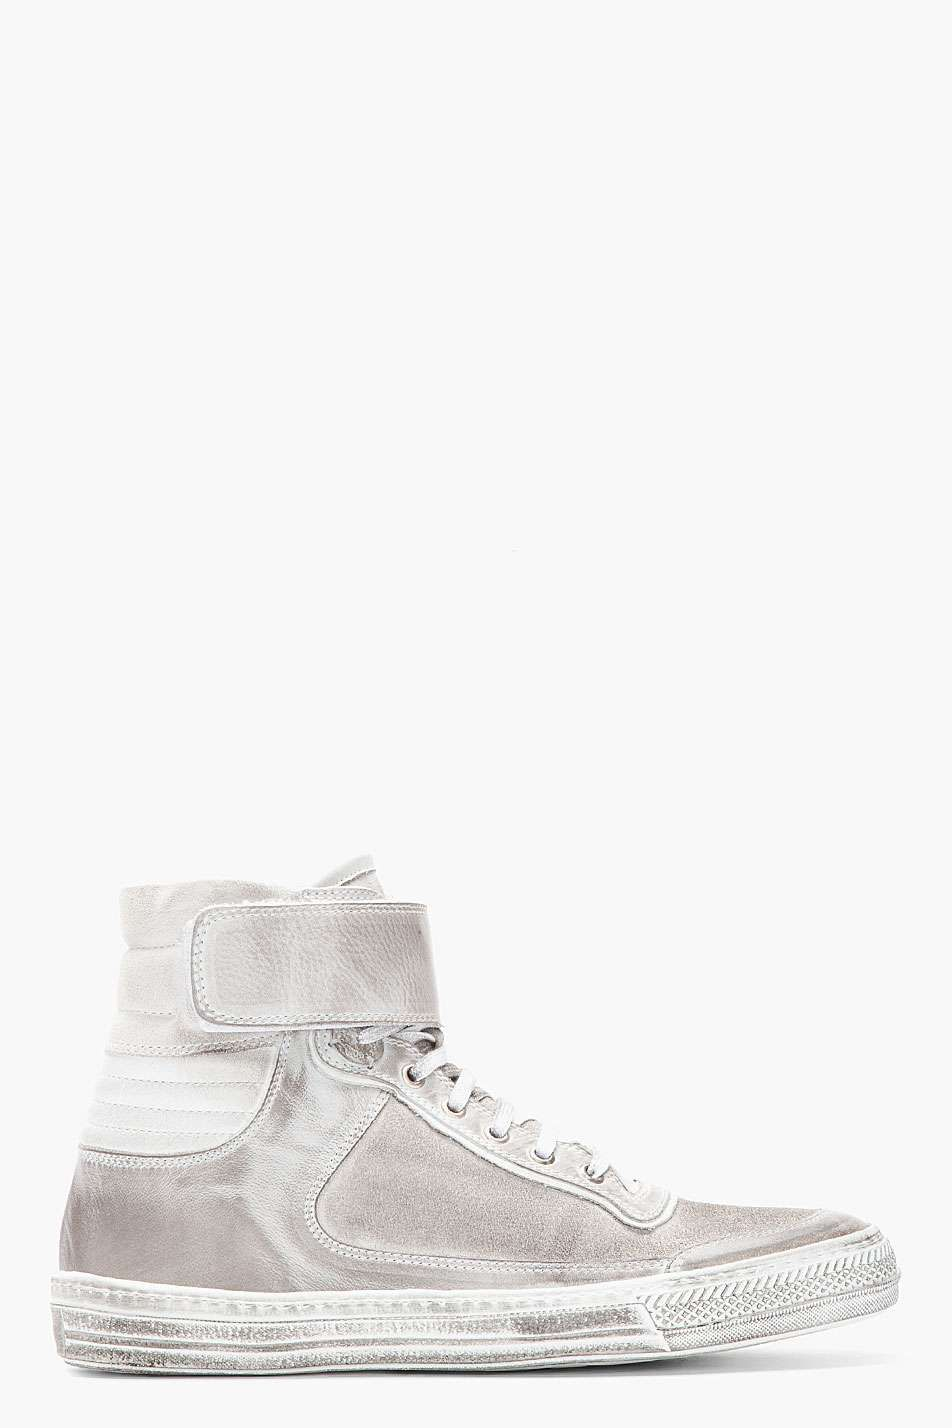 eb34797ff5b0 Diesel Black Gold Silver leather Jorge high-top sneakers